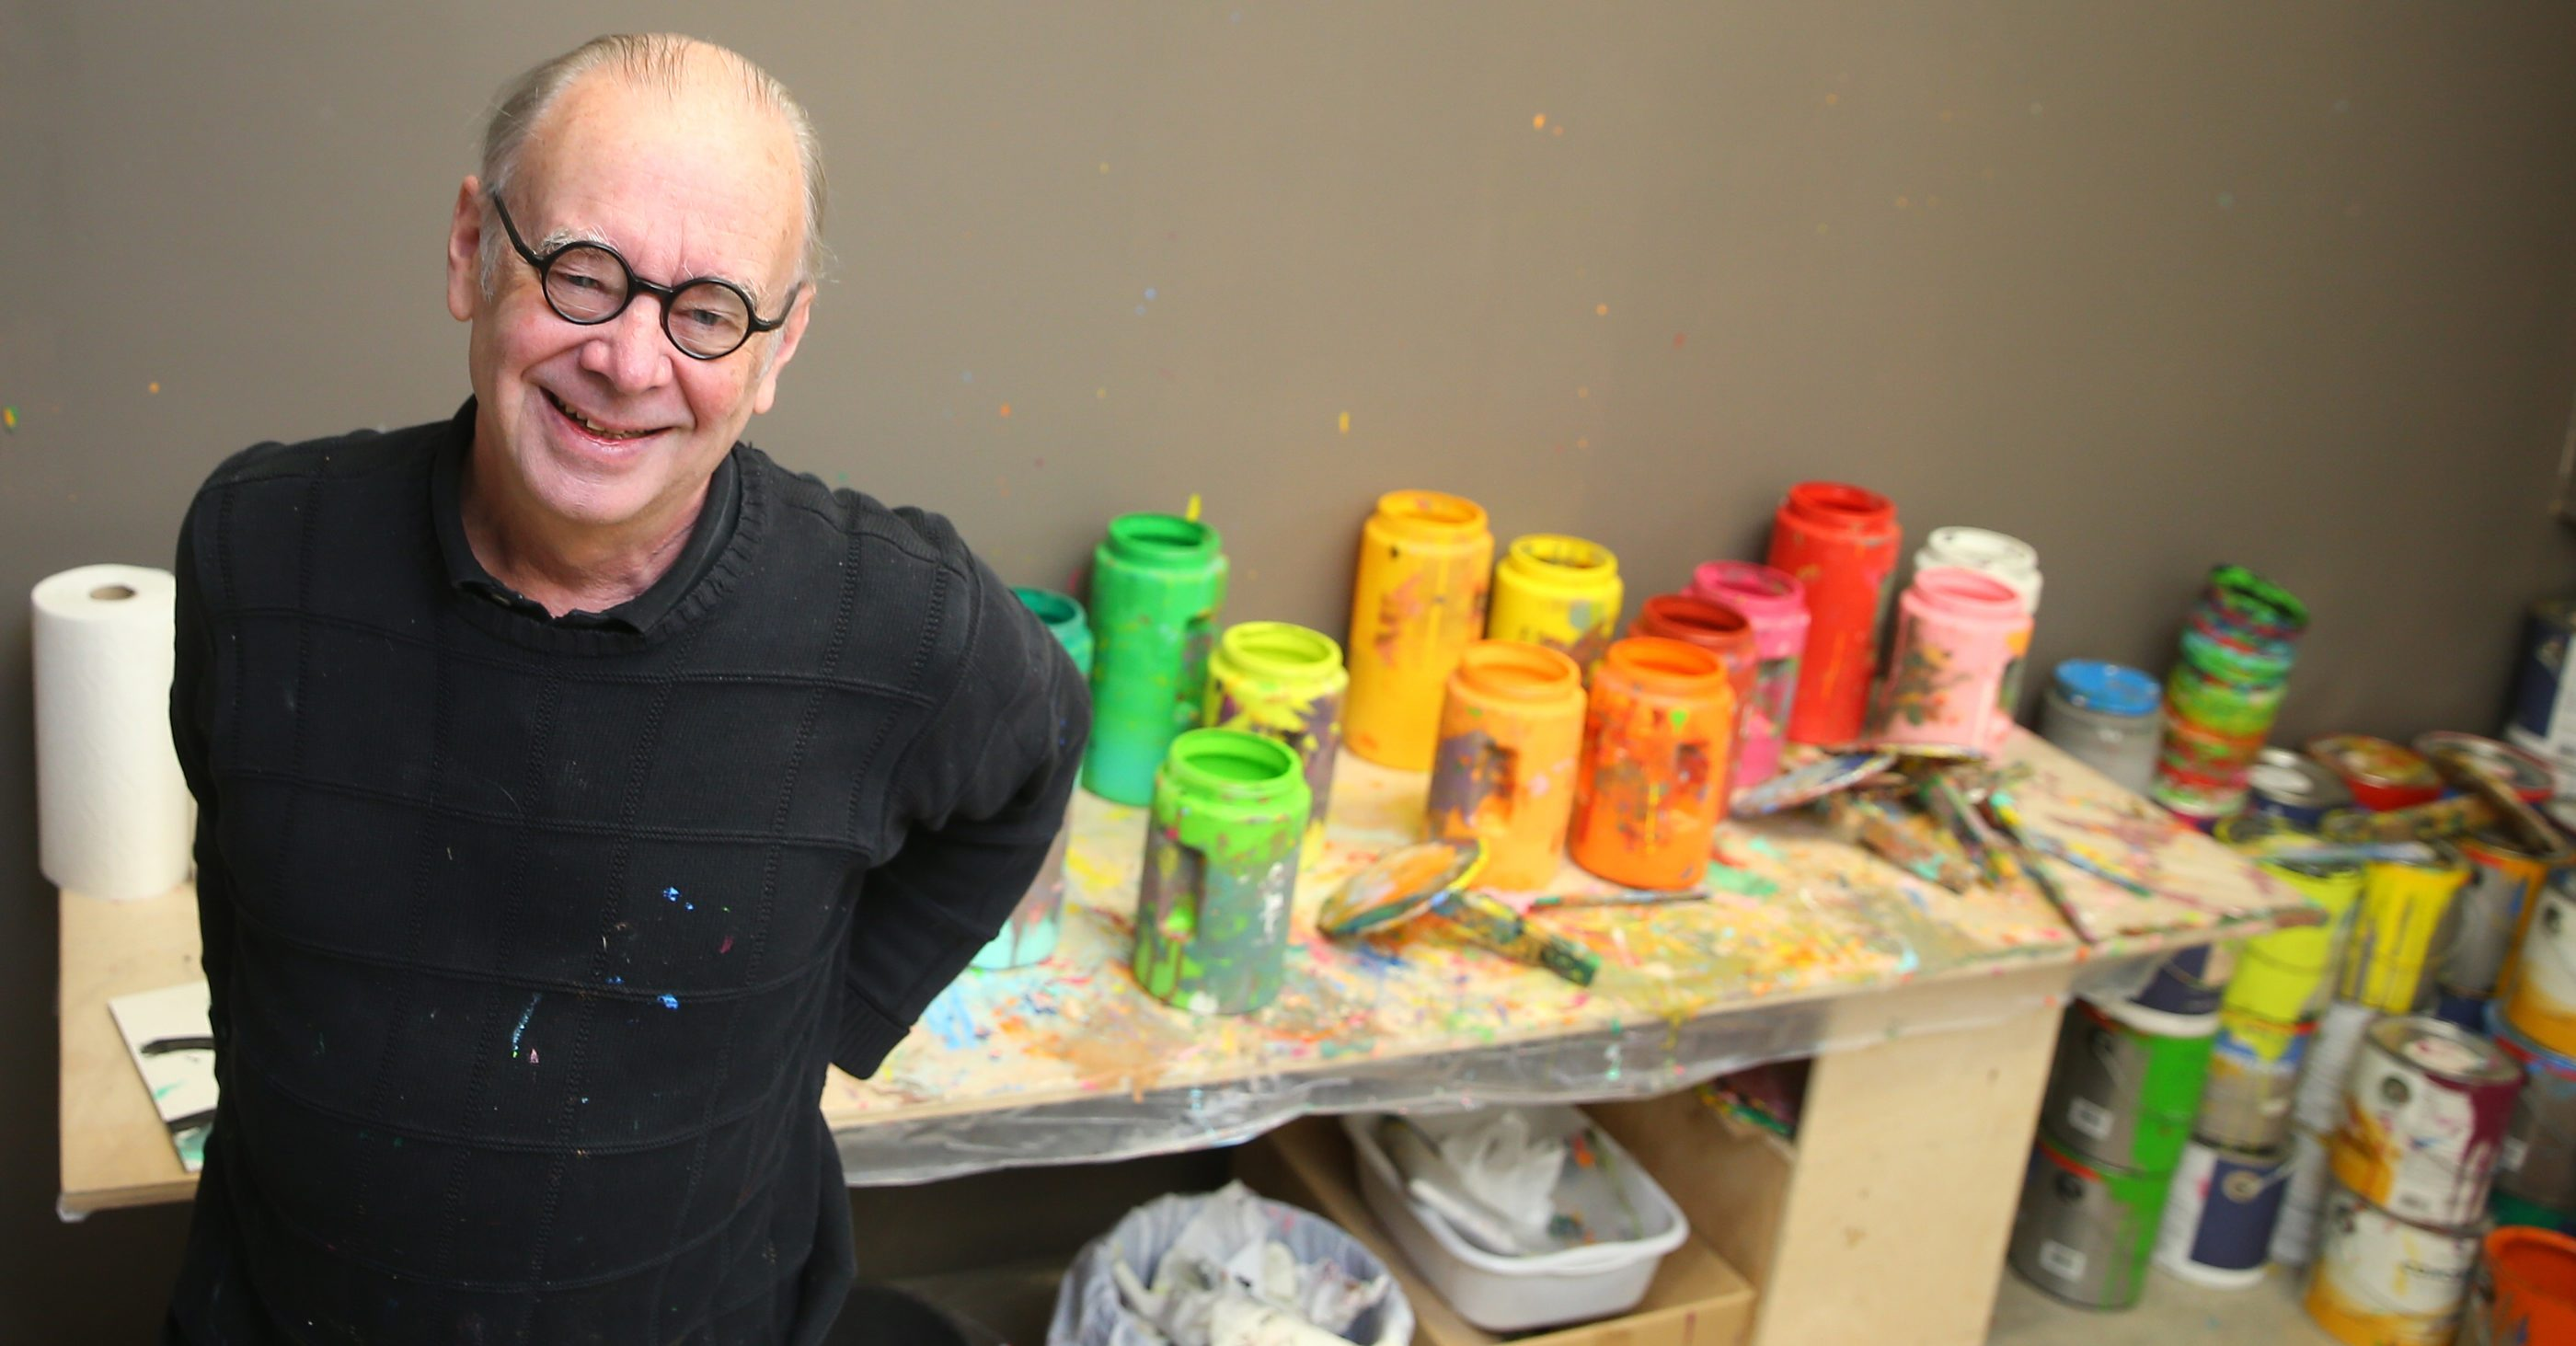 Painter Charles Clough talks about his collaborative paintings, at in his studio in the Print Shop on the Roycroft Campus in East Aurora , N.Y., on Sunday,  March 20, 2016.  (John Hickey/Buffalo News)